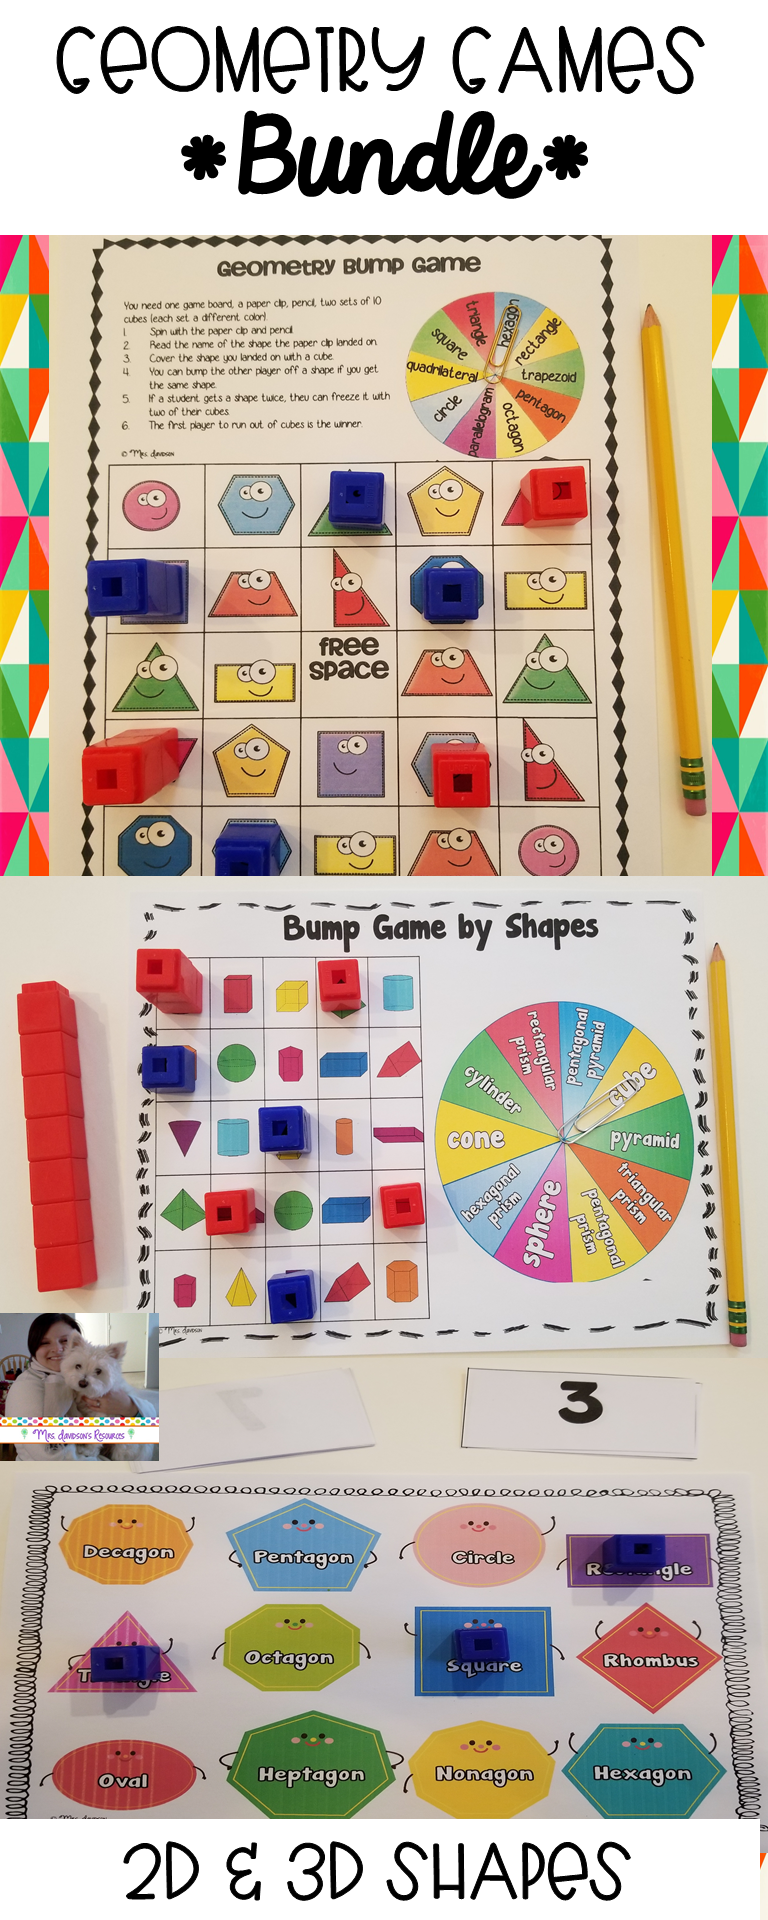 These Games Help Students To Practice Naming And Recognizing Basic Plane 2d And Solid 3d Shapes And Their Attributes I Math Resources Math Math Activities [ 1920 x 768 Pixel ]